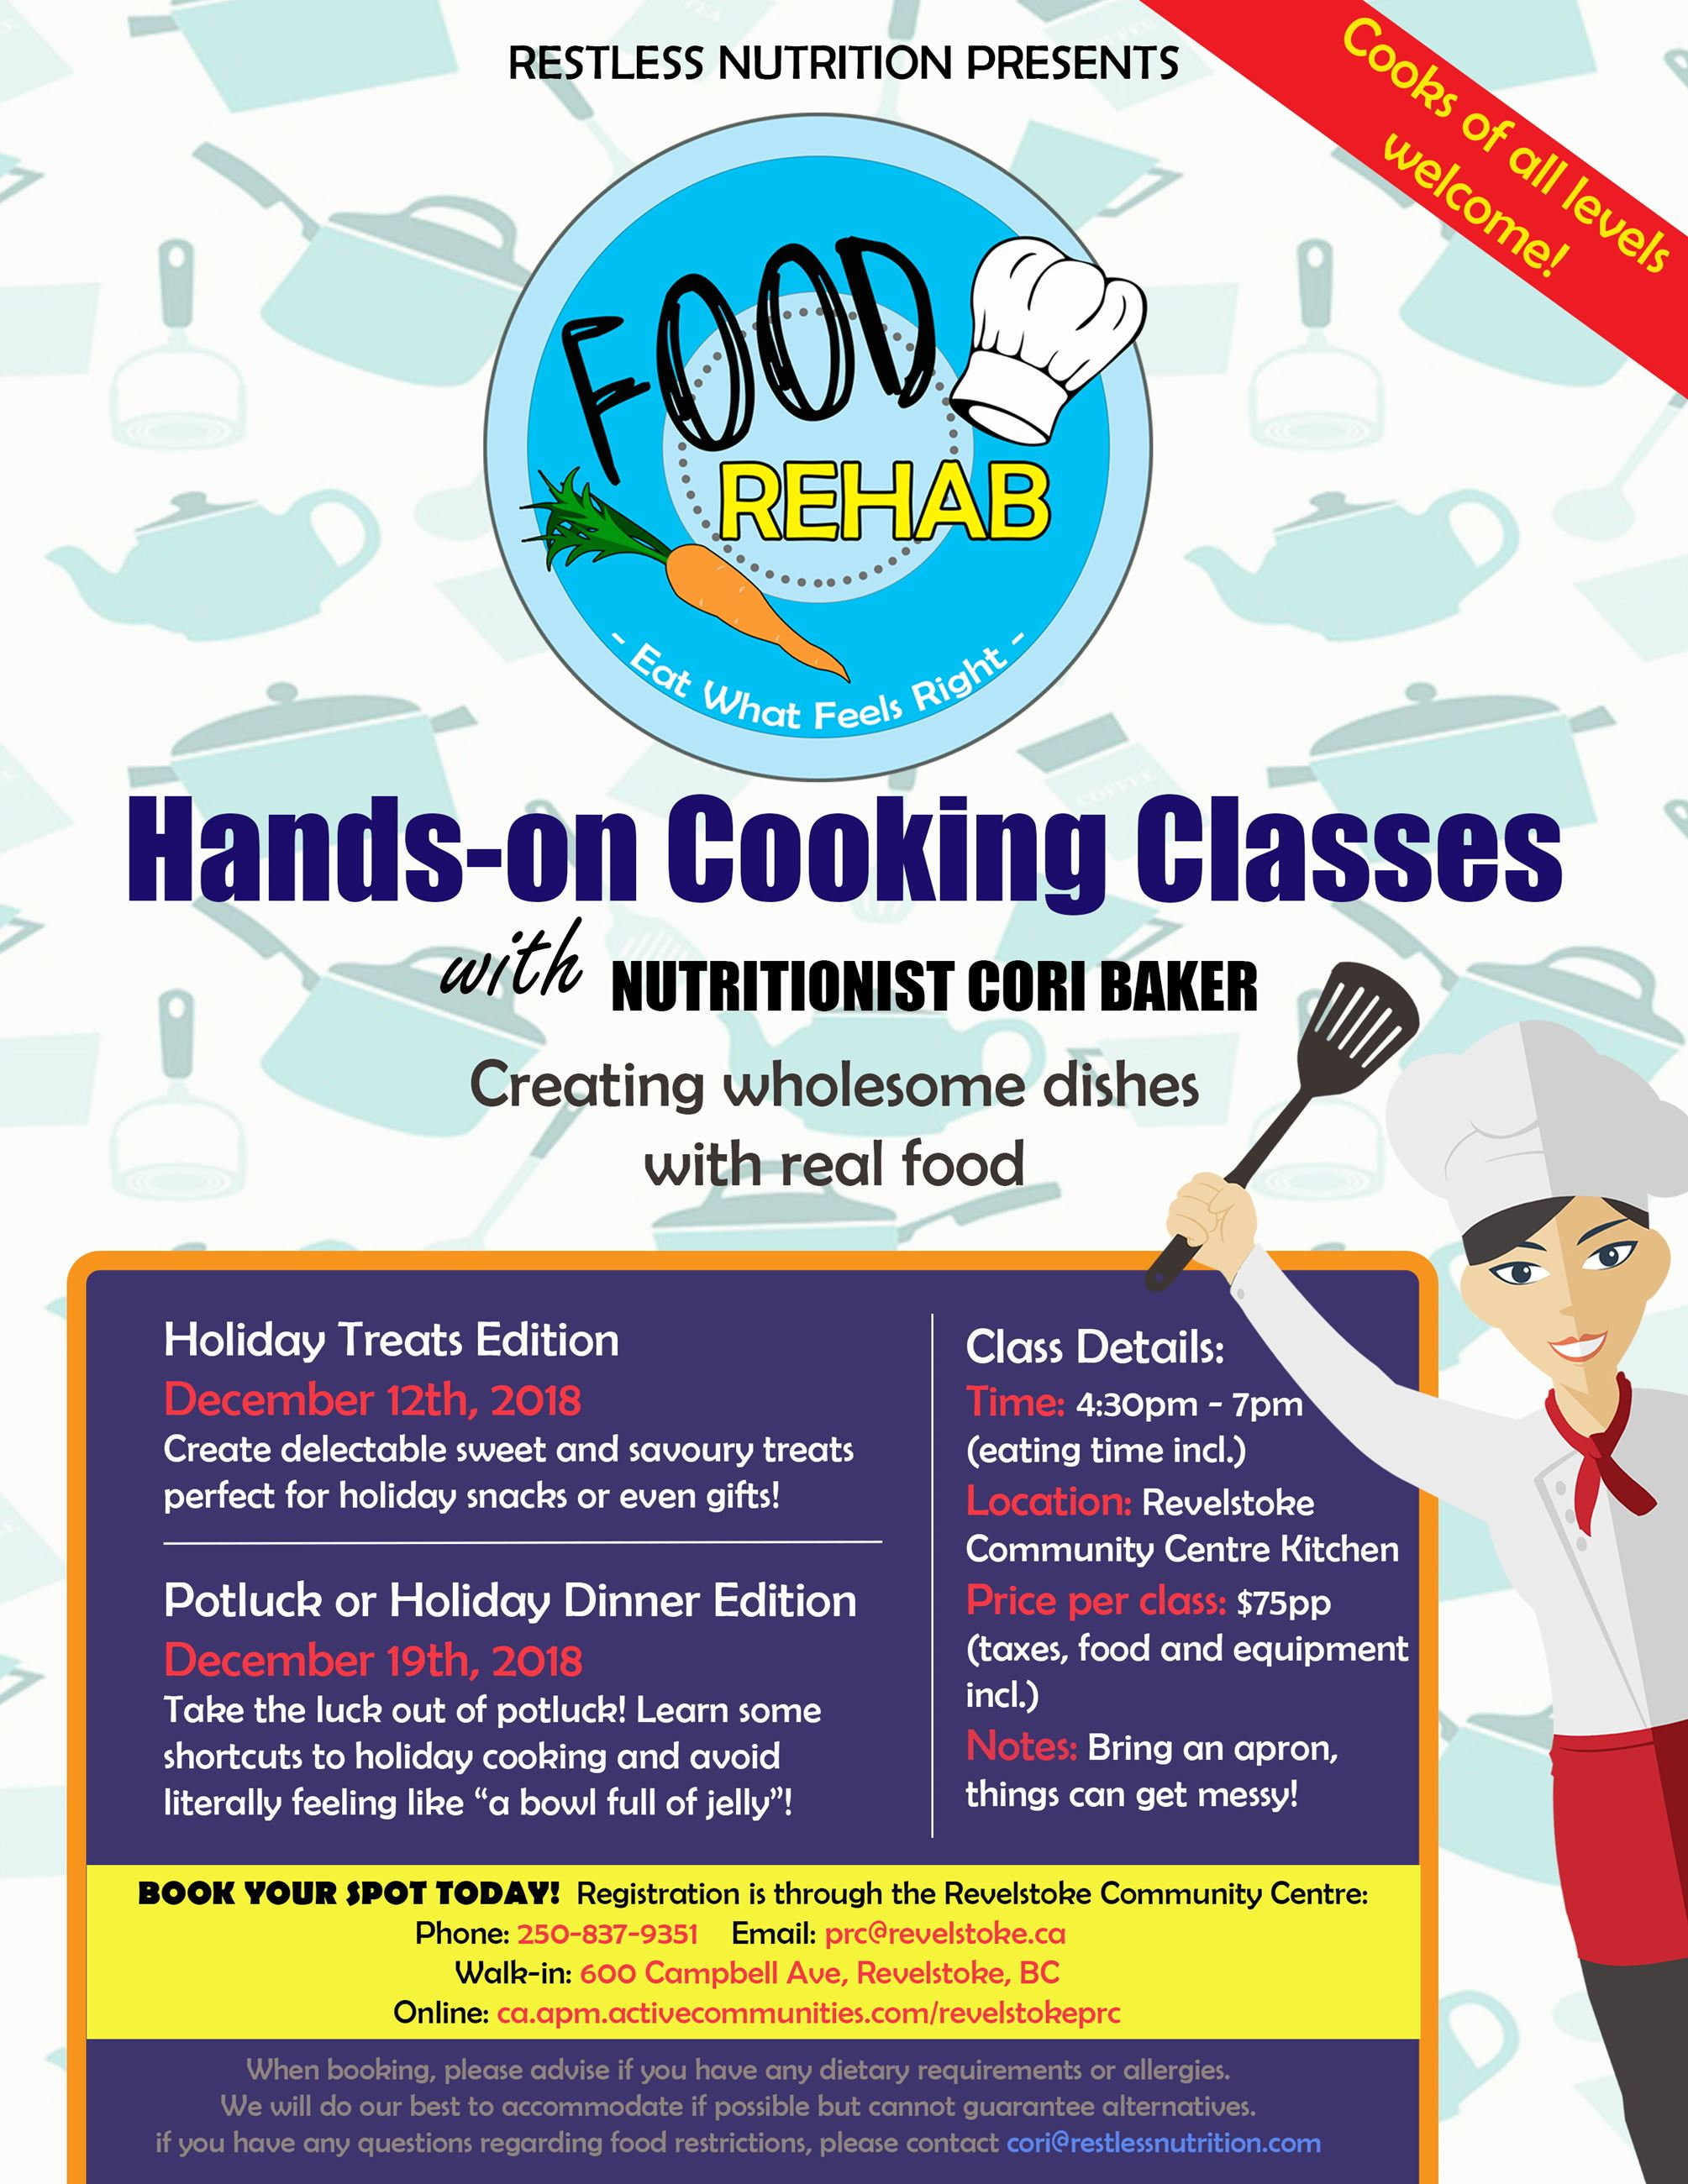 Hands-on Cooking Classes - Holiday Treats Edition @ Revelstoke Community Centre |  |  |